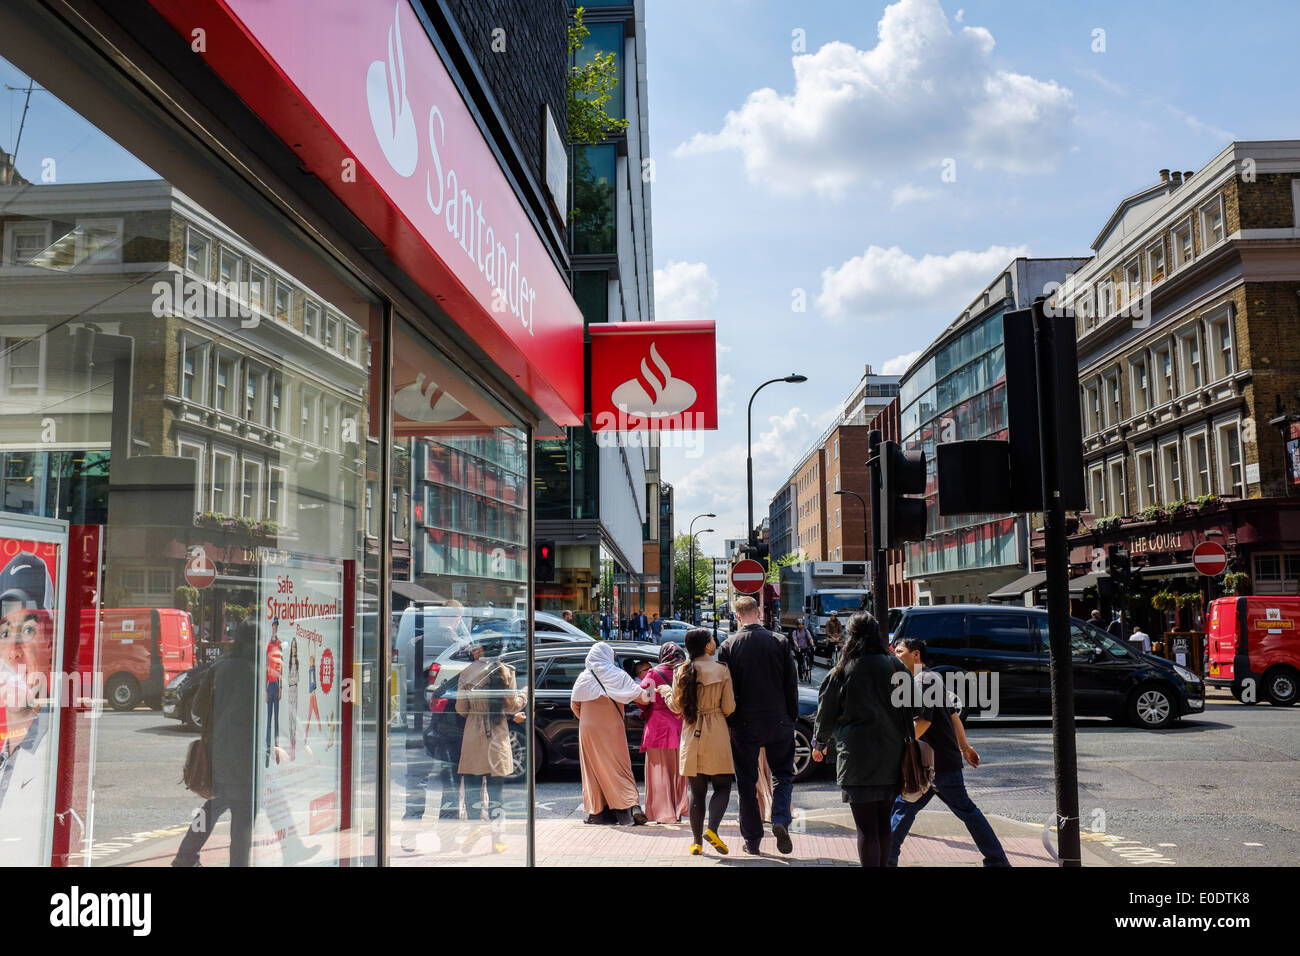 A high street branch of the Santander Bank on Tottenham Court Road, London, England, UK, Britain, British on a sunny day. - Stock Image